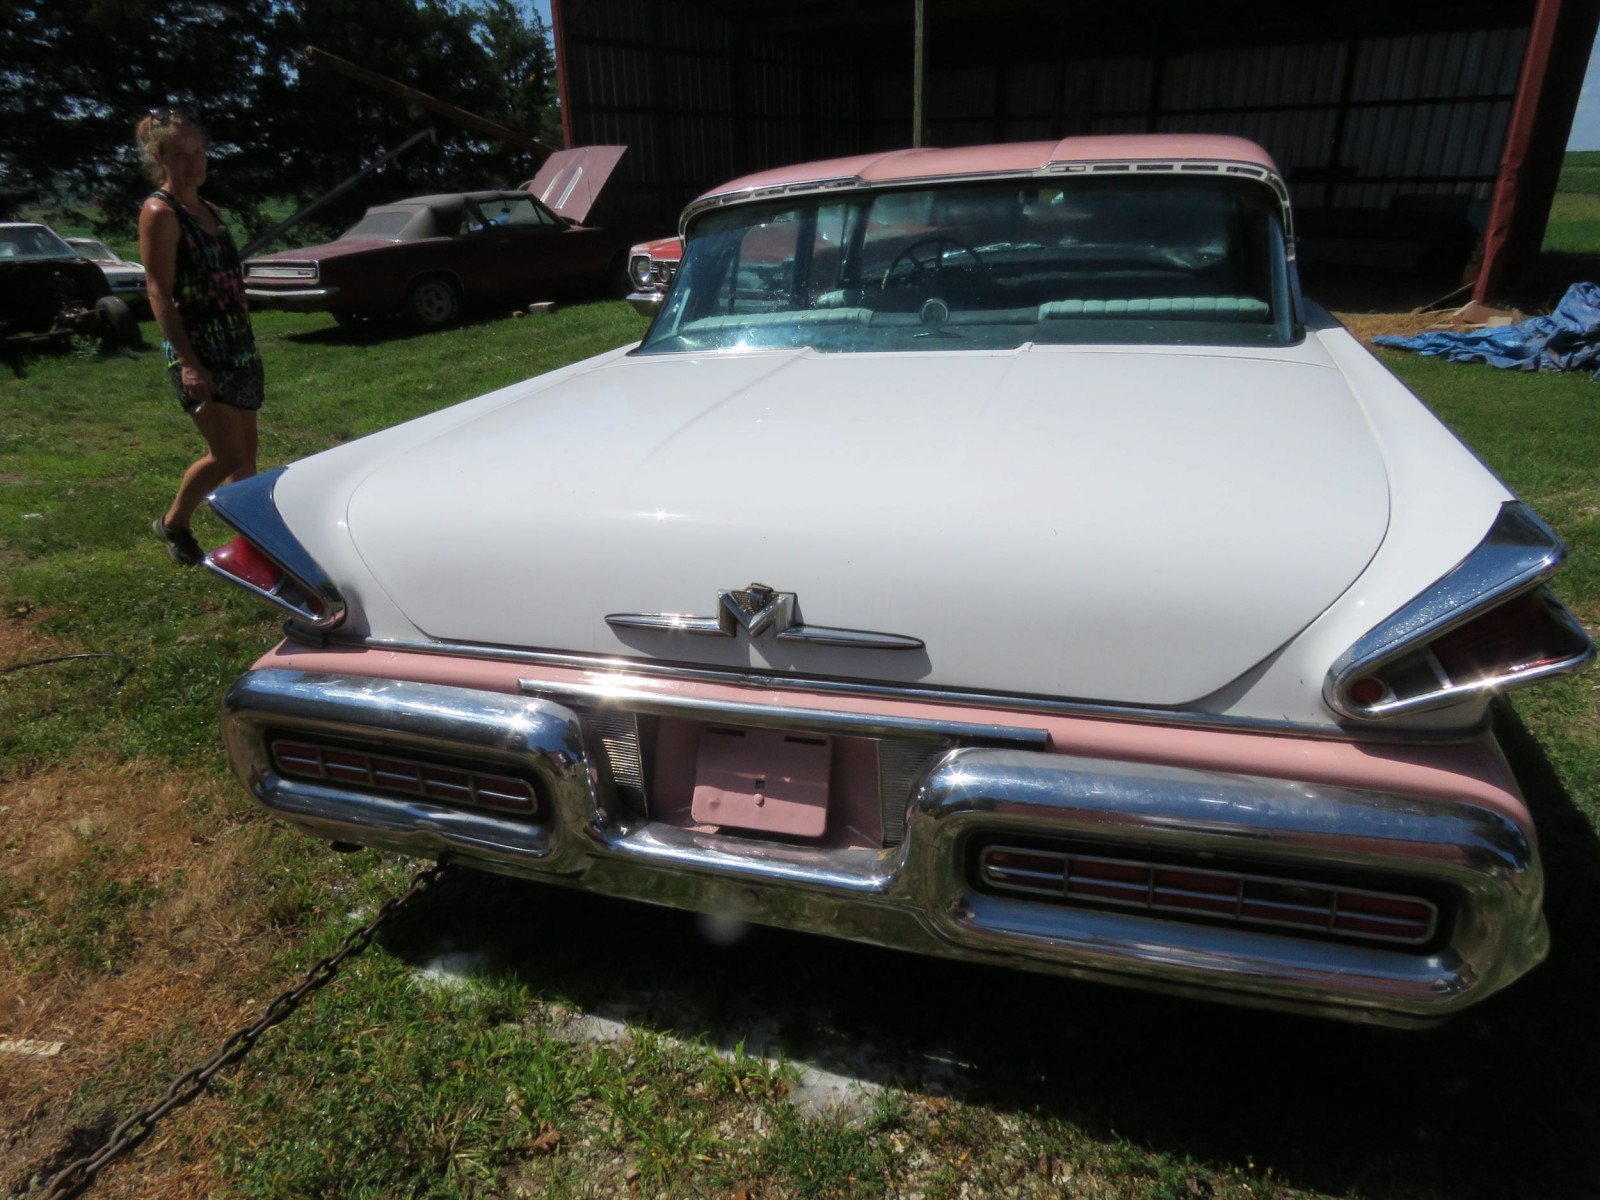 1957 Mercury Montclair 4dr Sedan - Image 5